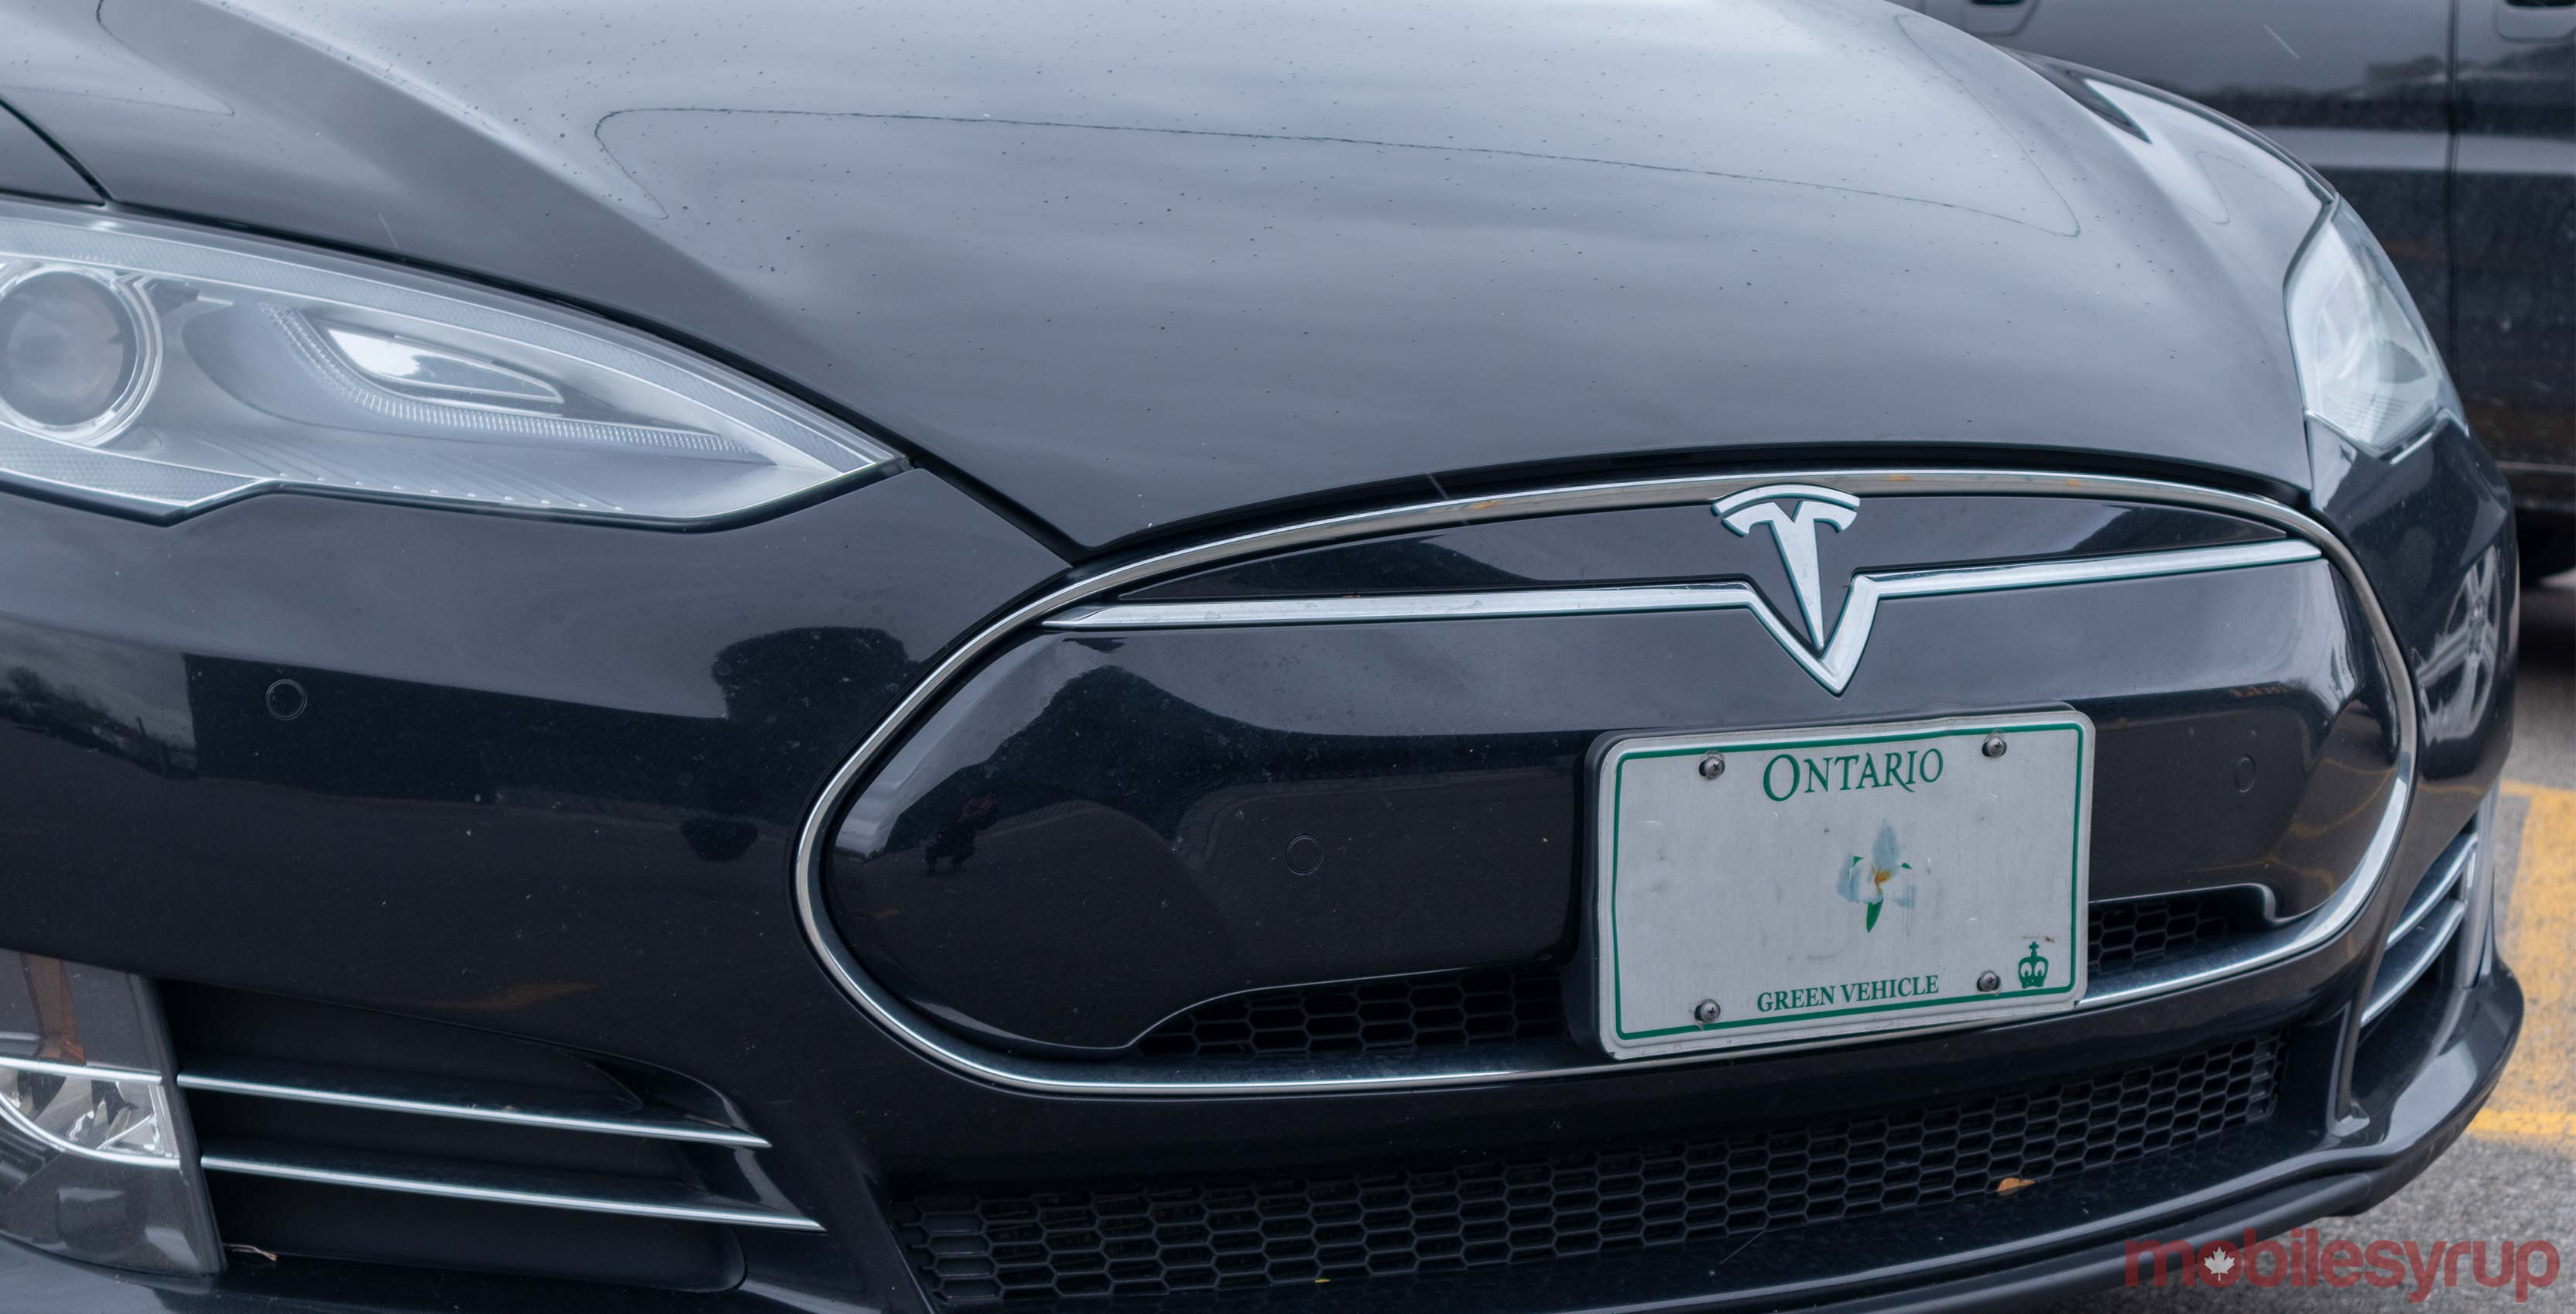 A Tesla software update is decreasing users battery life and